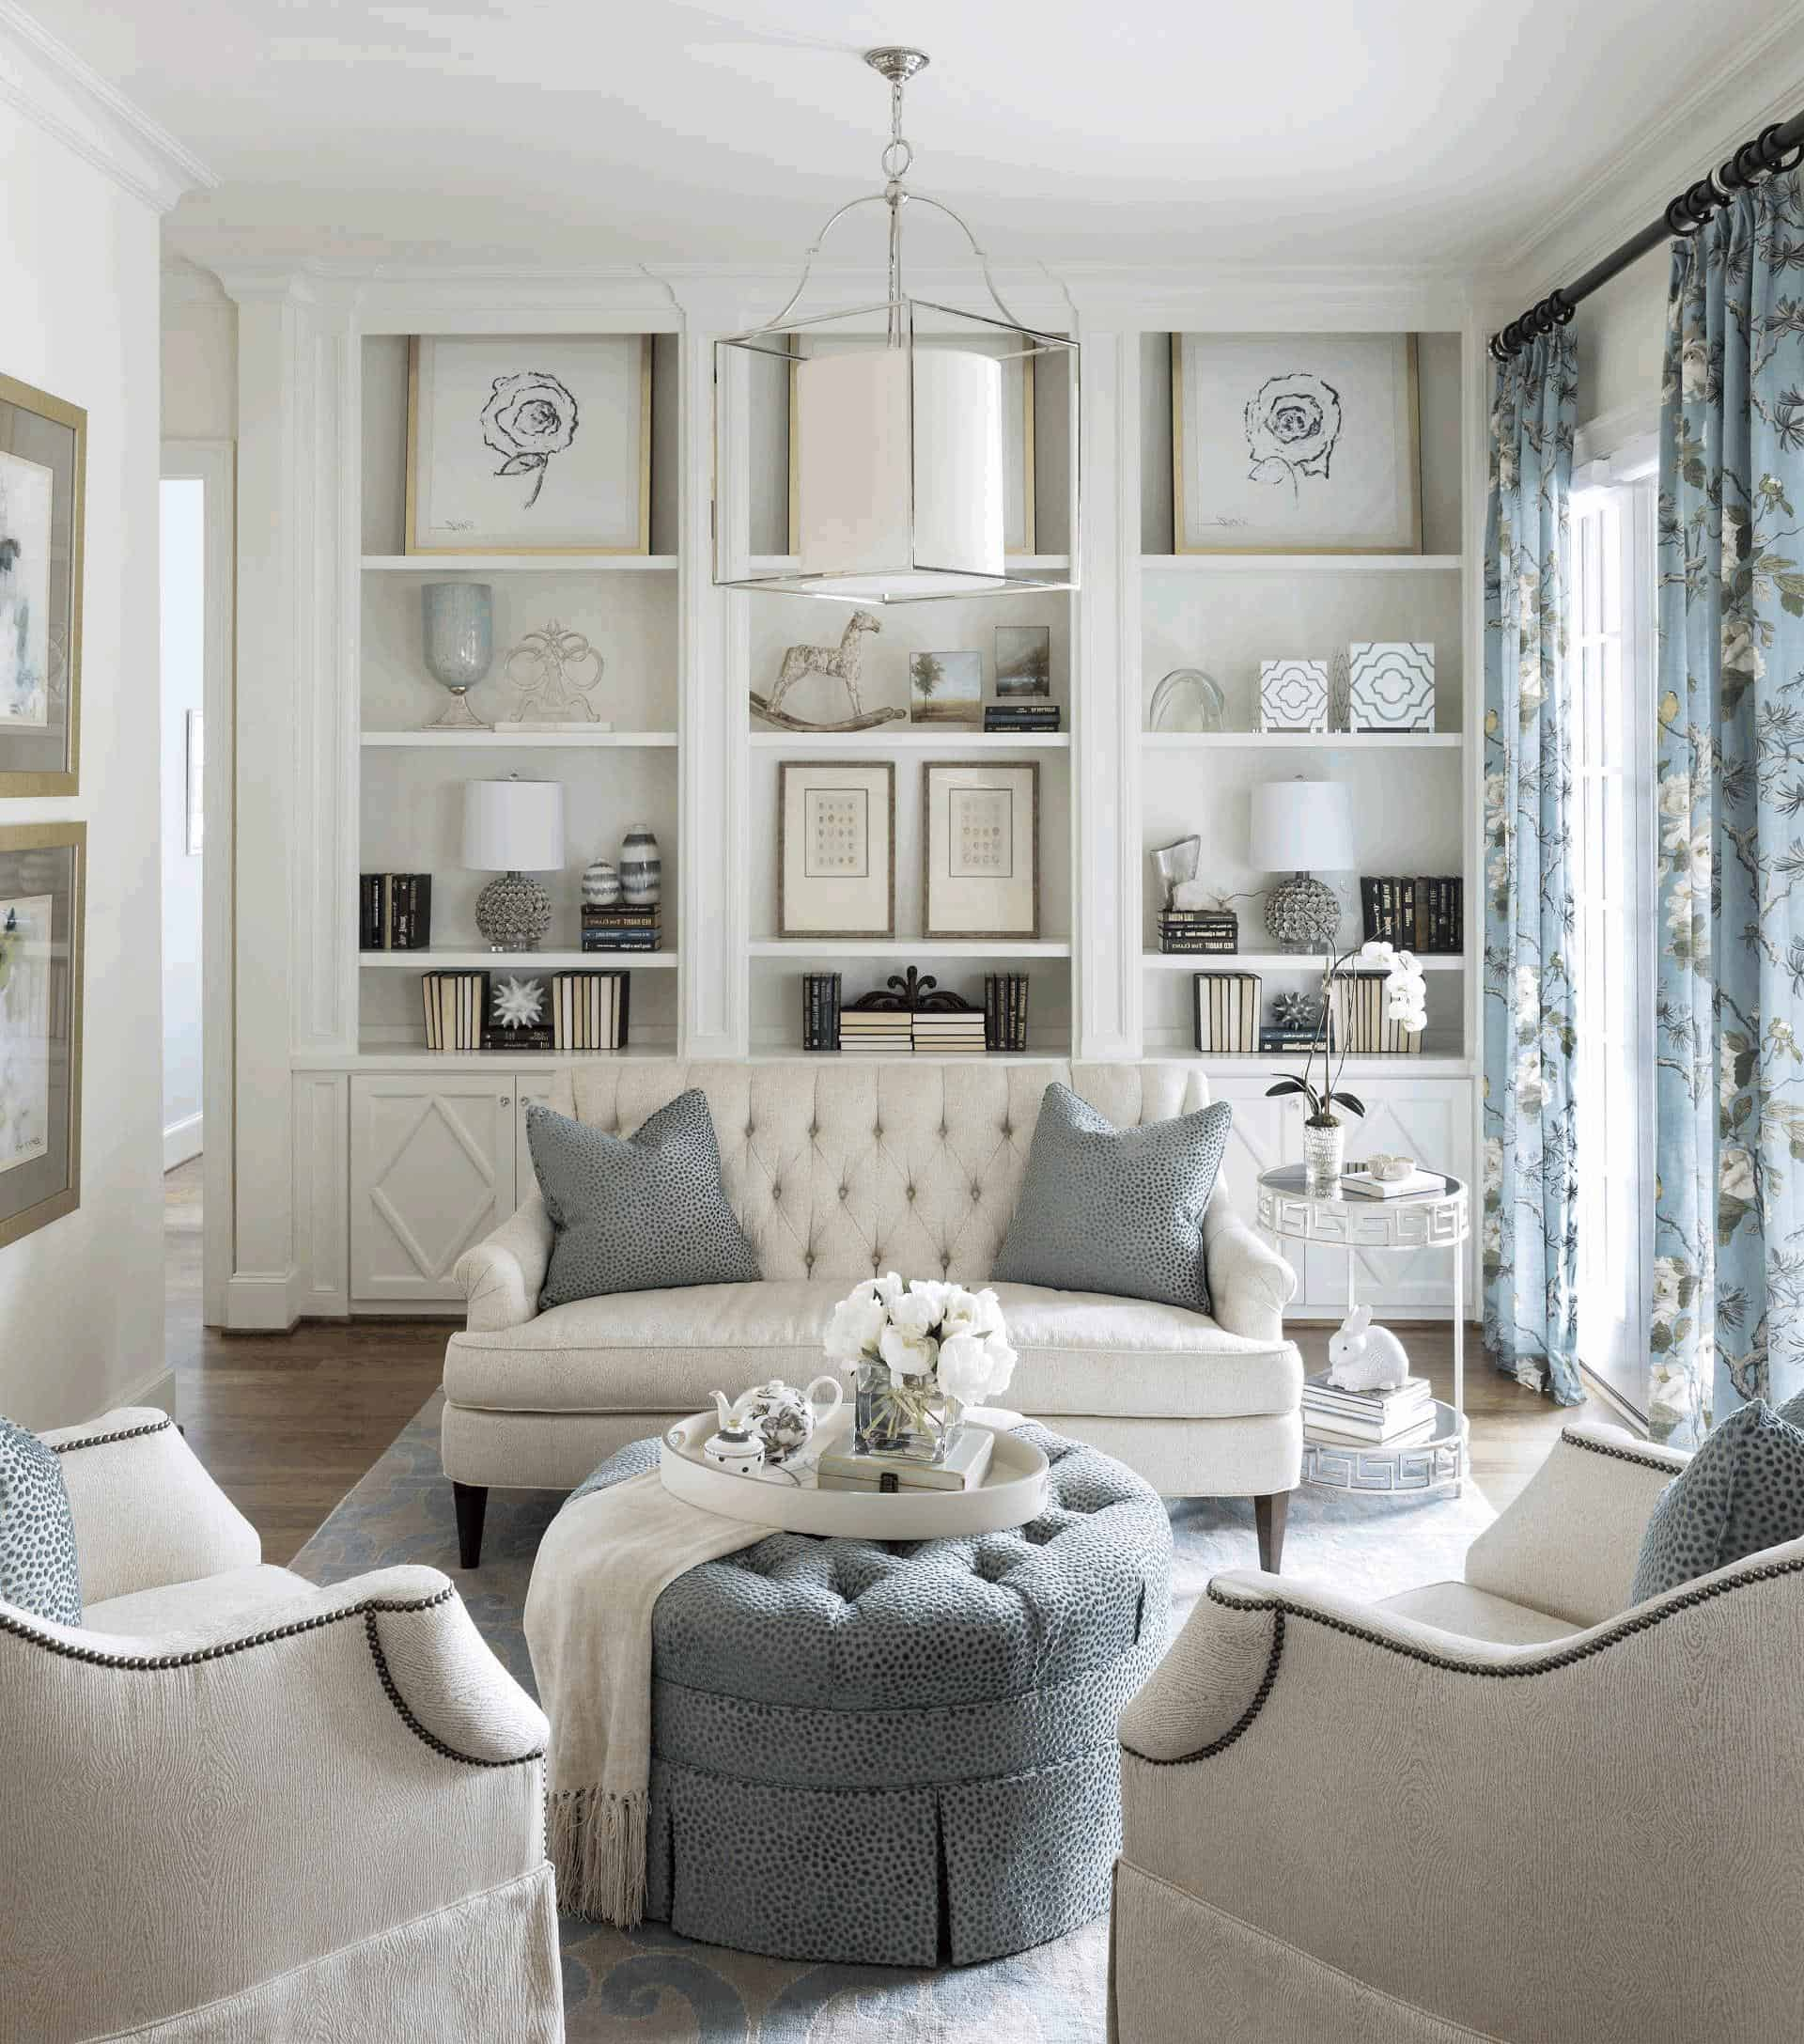 White Living Room: White Sofa Ideas For A Stylish Living Room